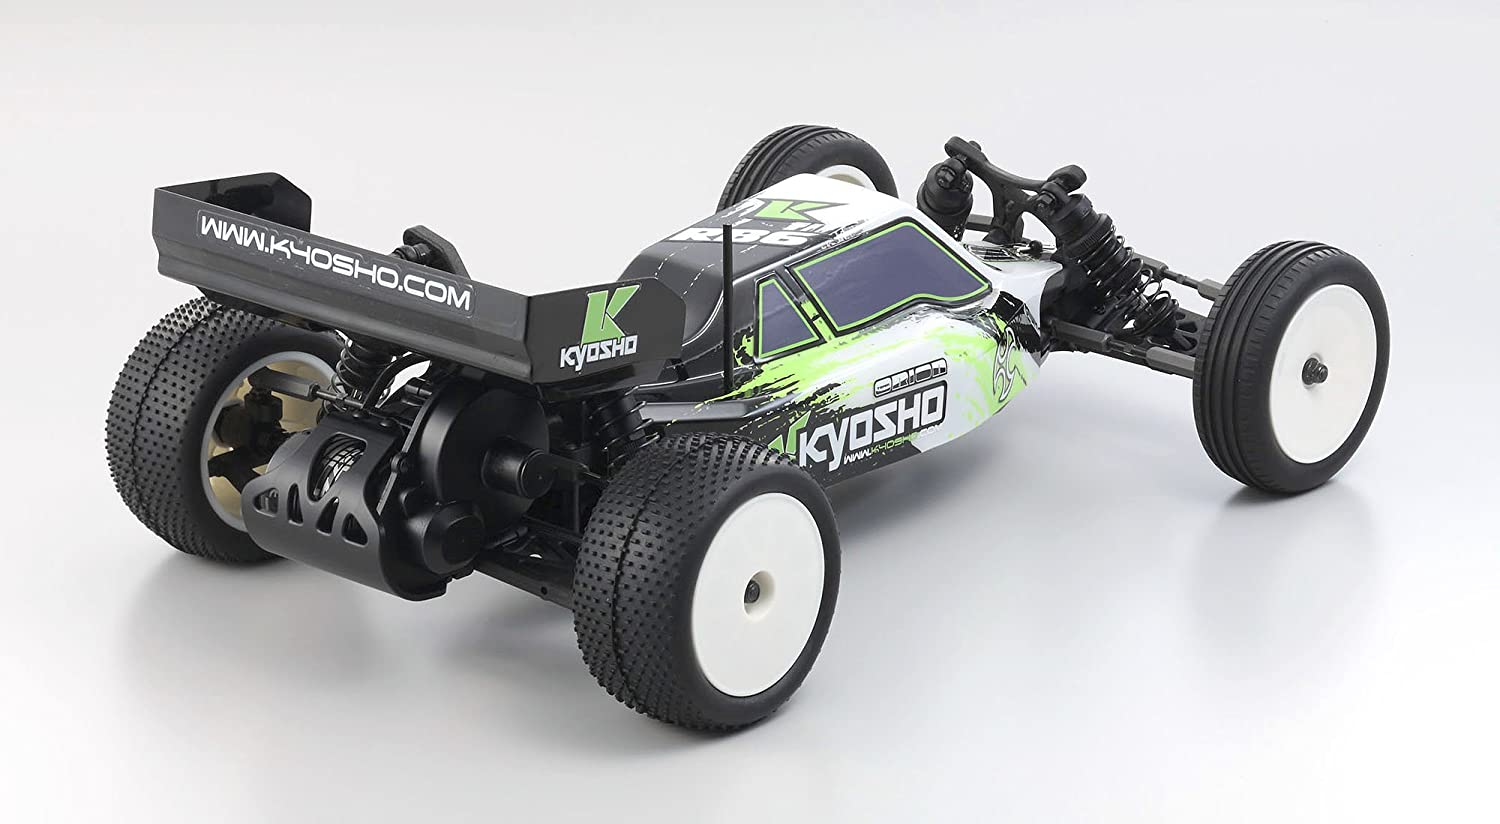 Amazon.com: Kyosho Ultima RB6 RS Brushless Electric Racing Buggy (1/10  Scale): Toys & Games